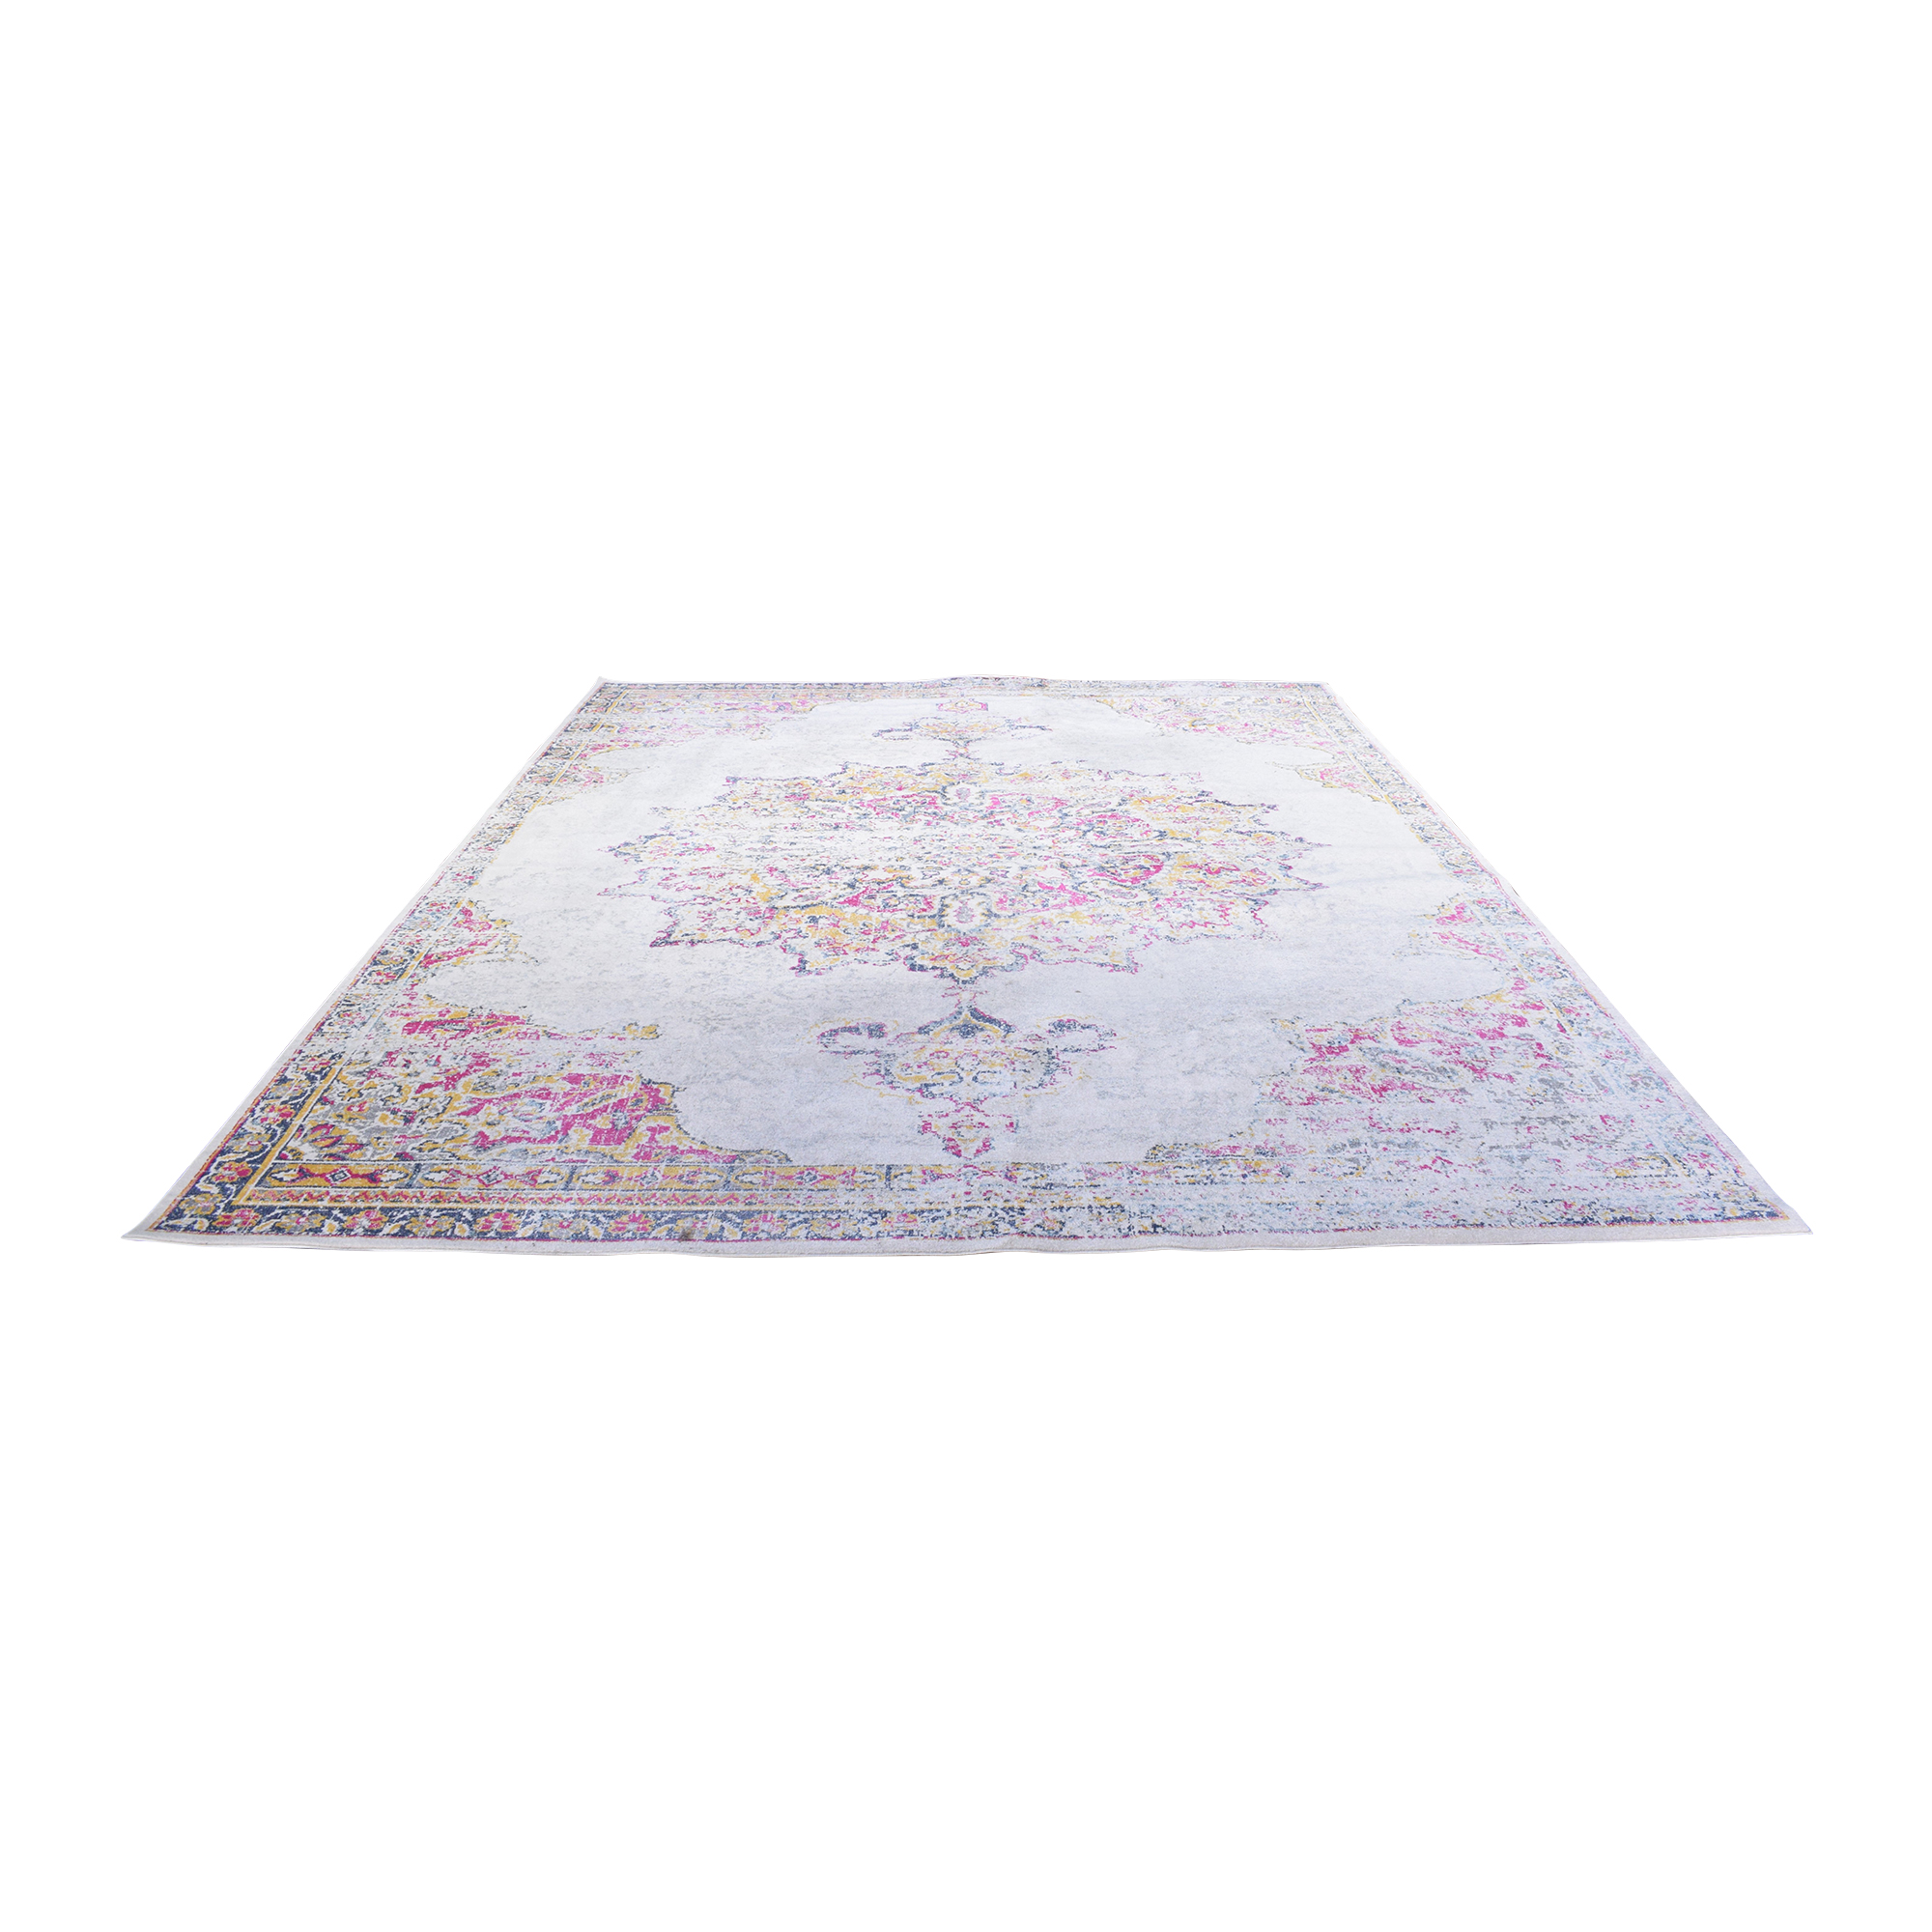 nuLOOM Vintage Persian Medallion Area Rug sale